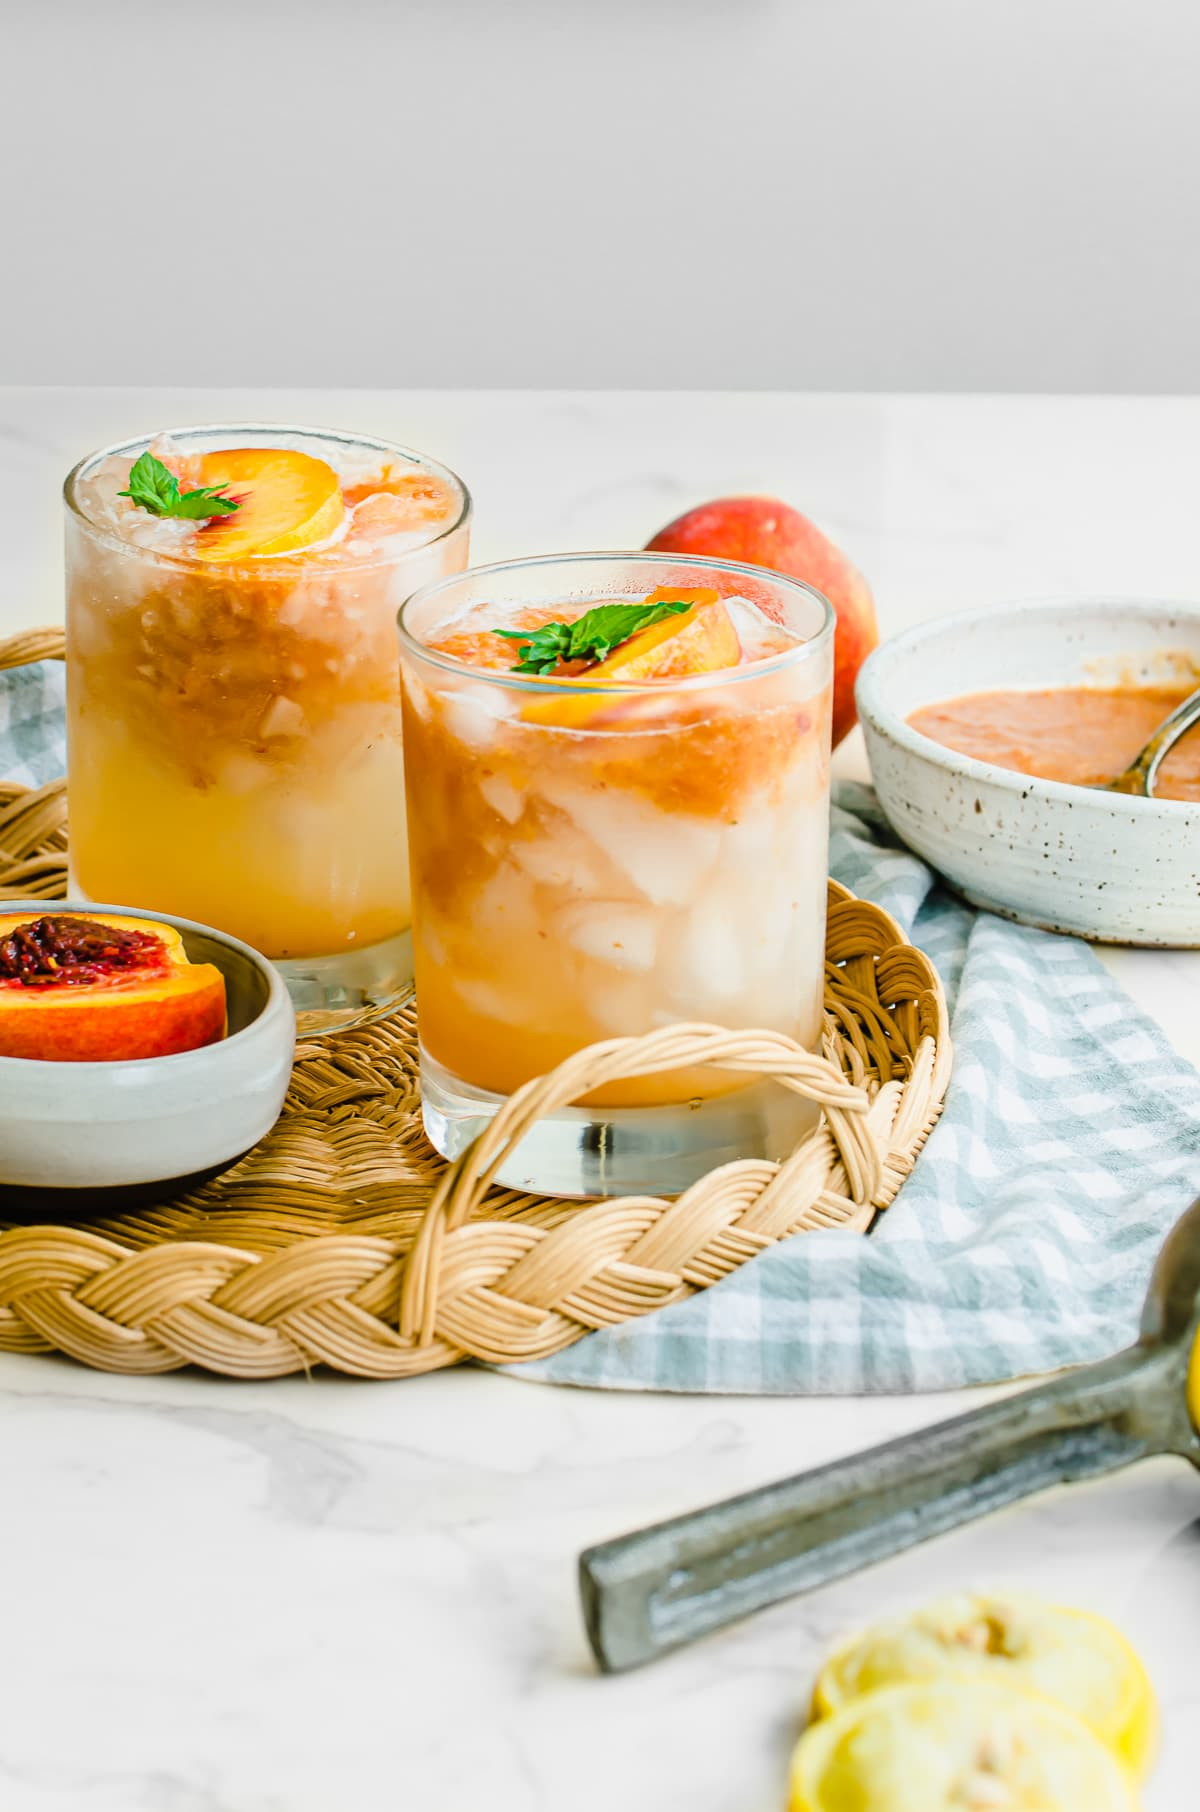 Two glasses of peach lemonade on a wicker serving tray with a gingham dish towel.